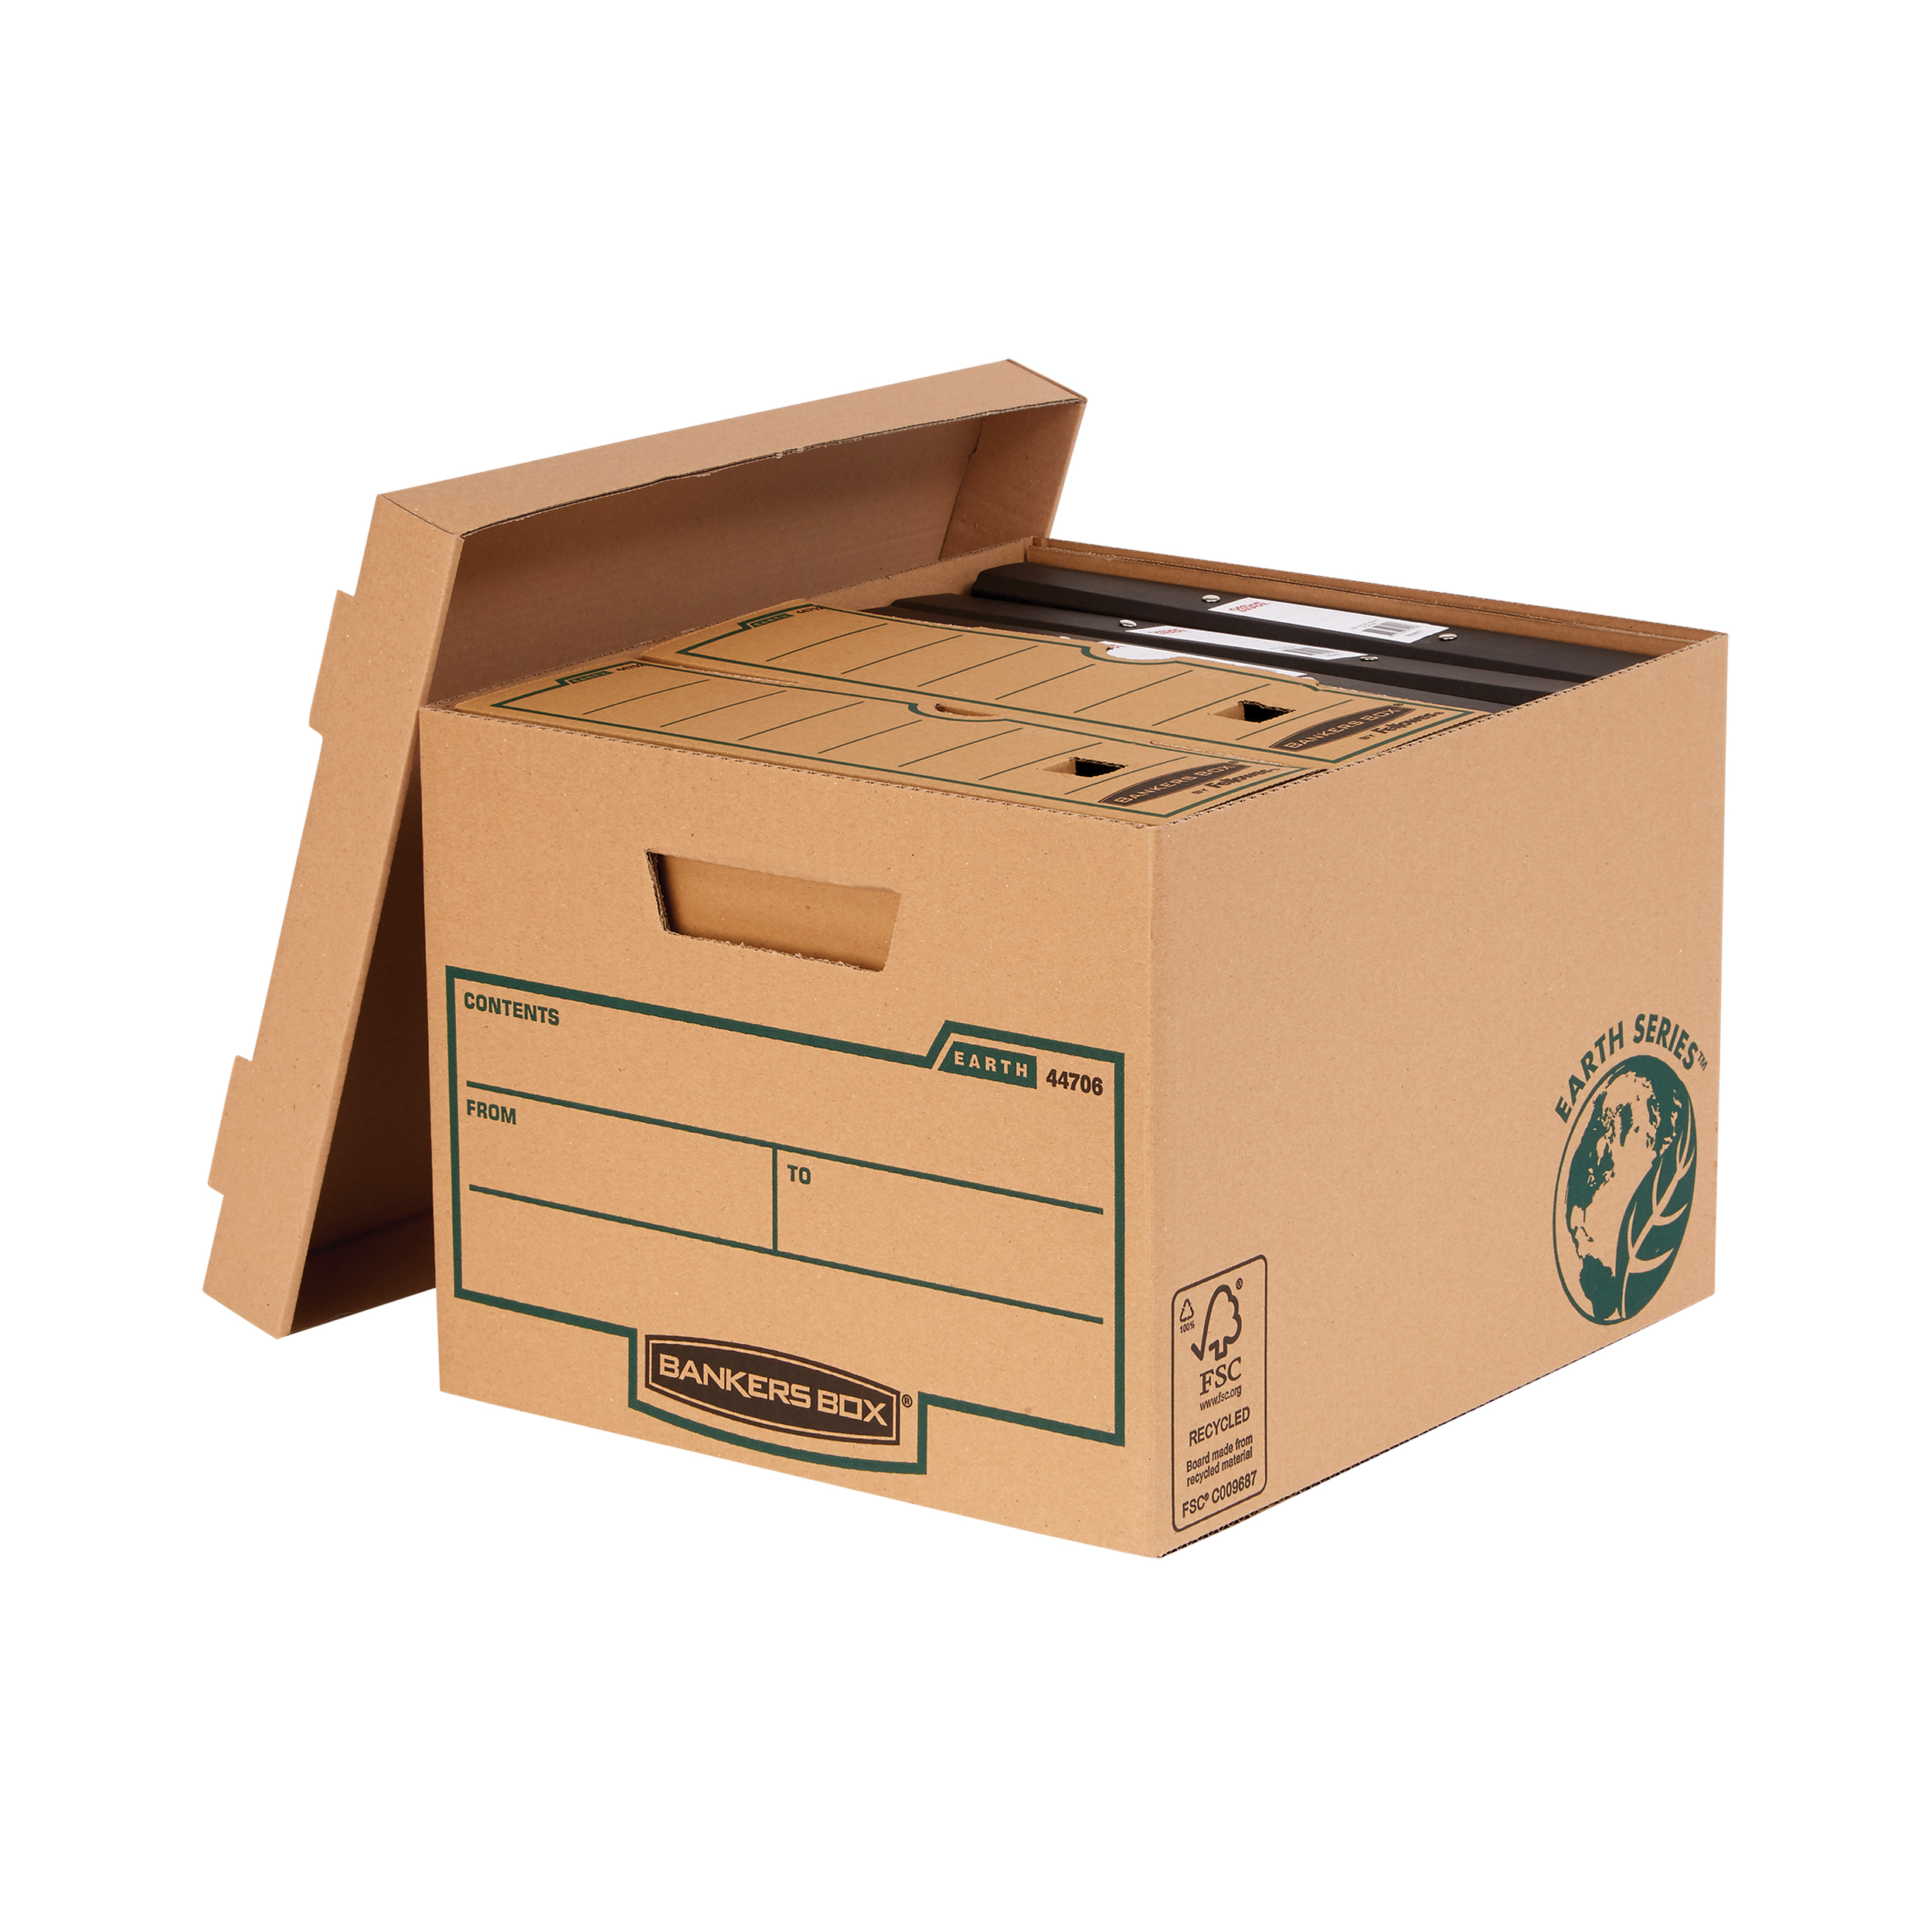 Bankers Box Earth Series by Fellowes Std Storage Boxes Brown Ref 4470601 [Pack 10] [2 for 1] Jan-Mar 20